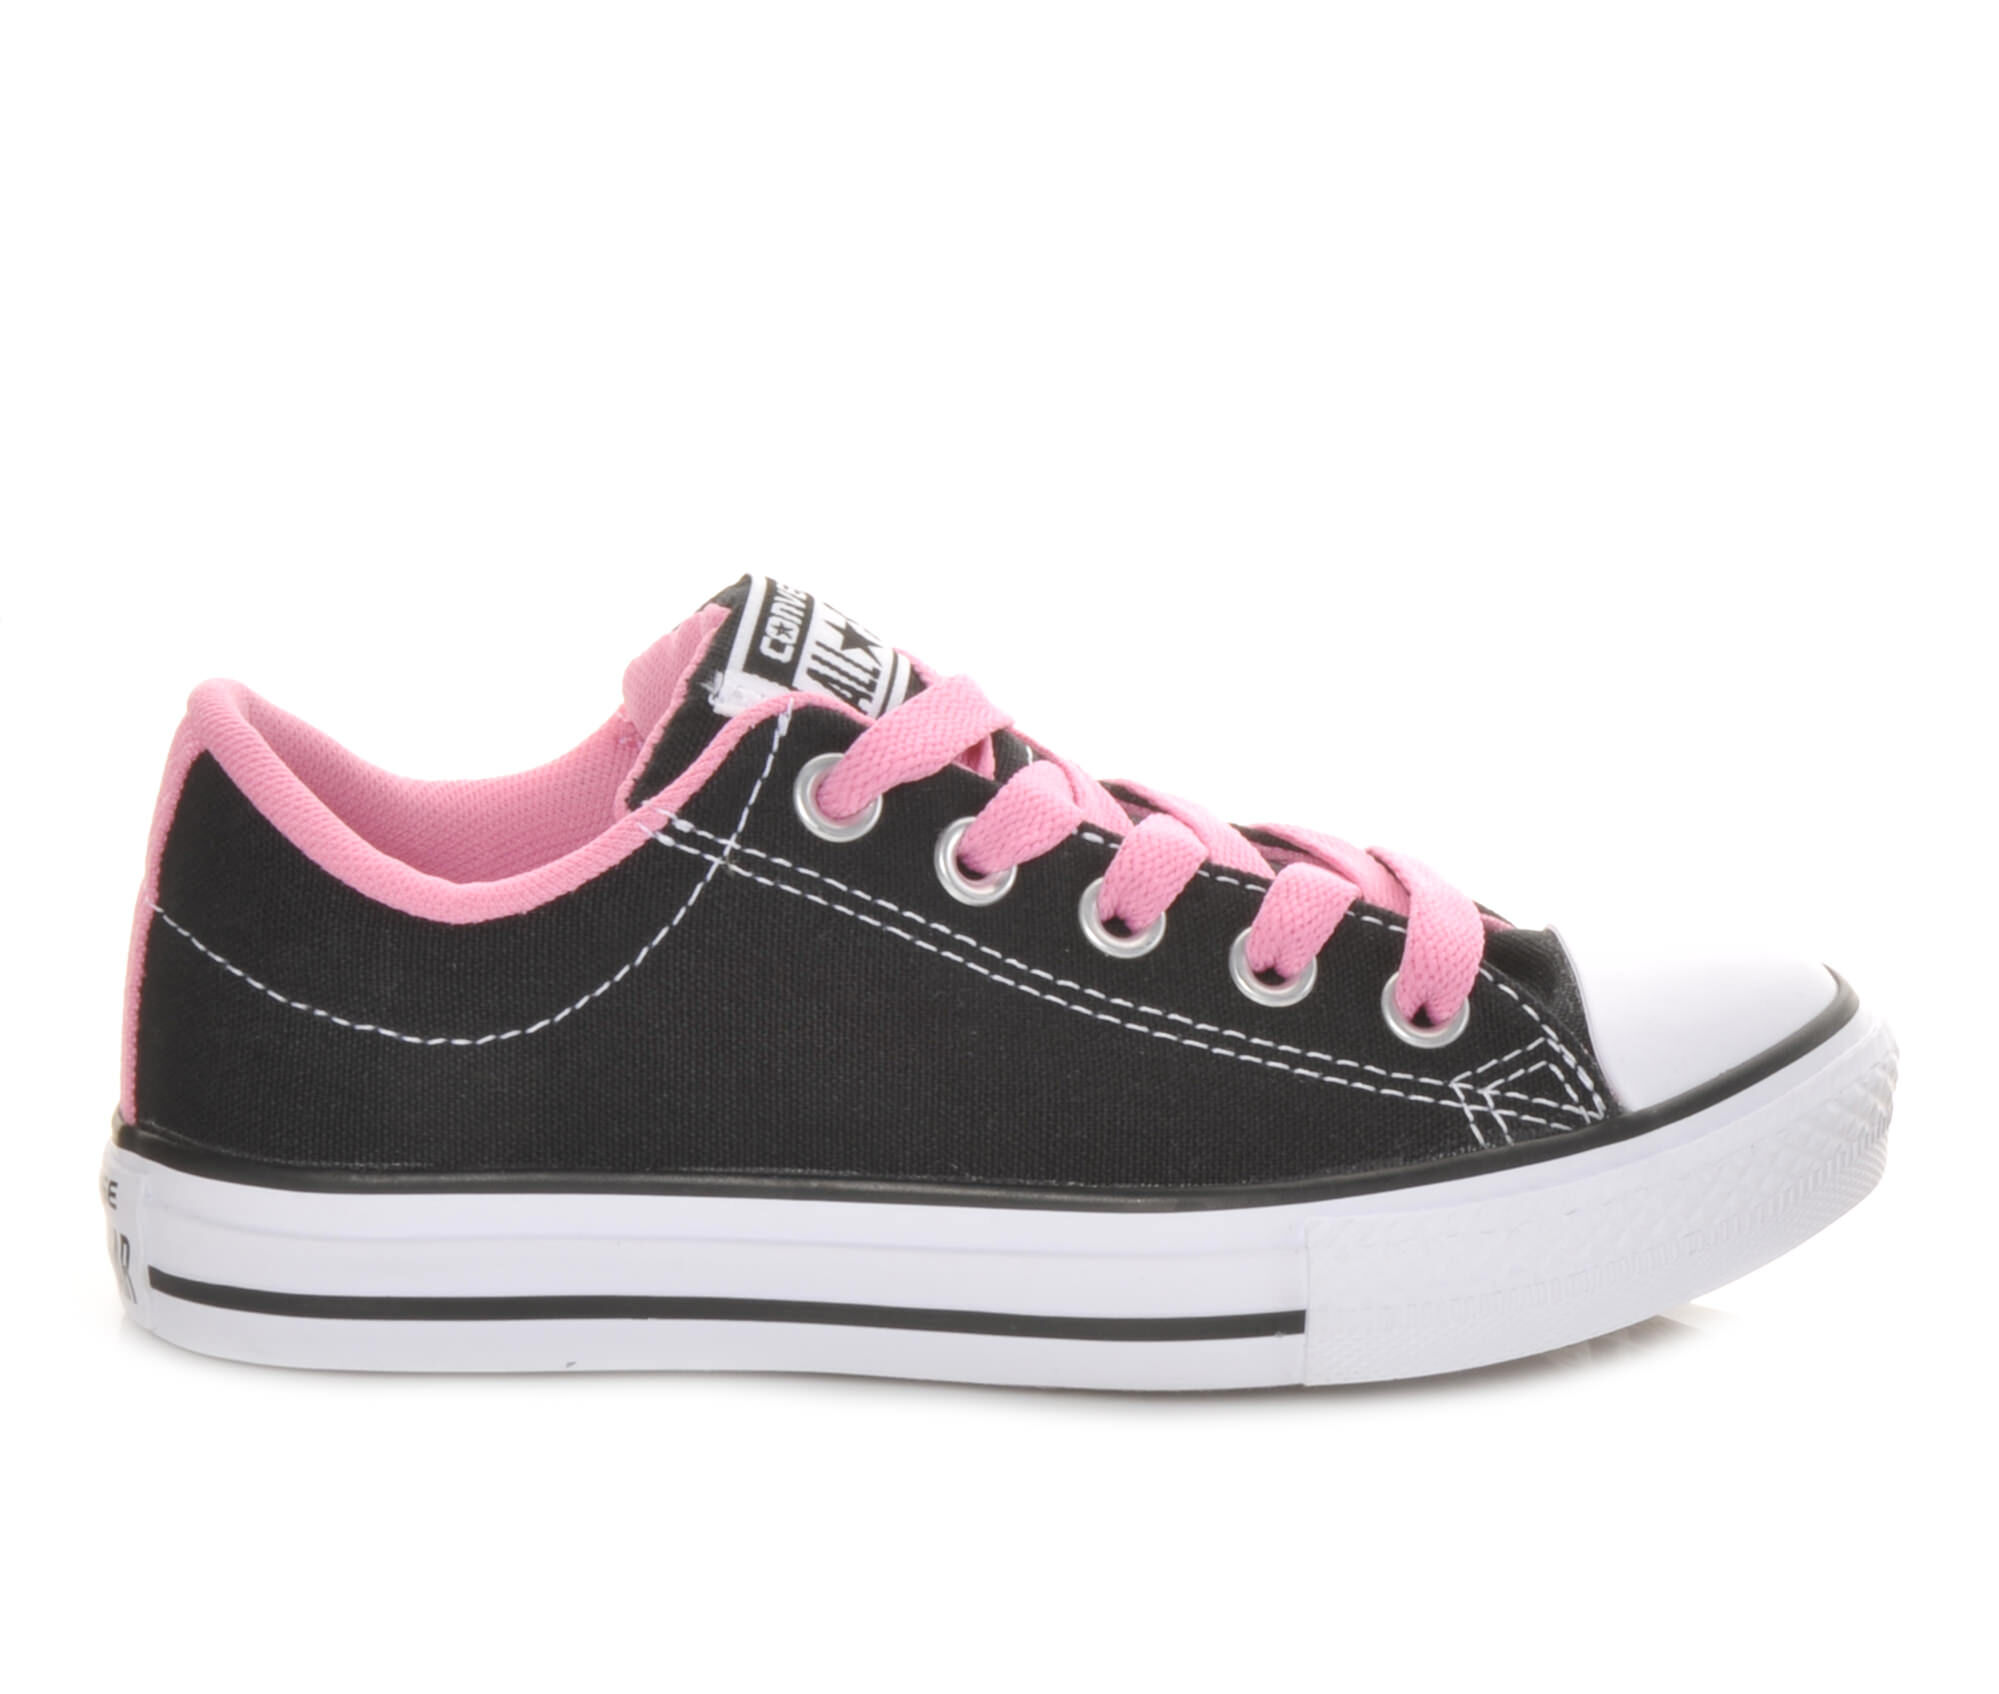 converse all star shoes for boys